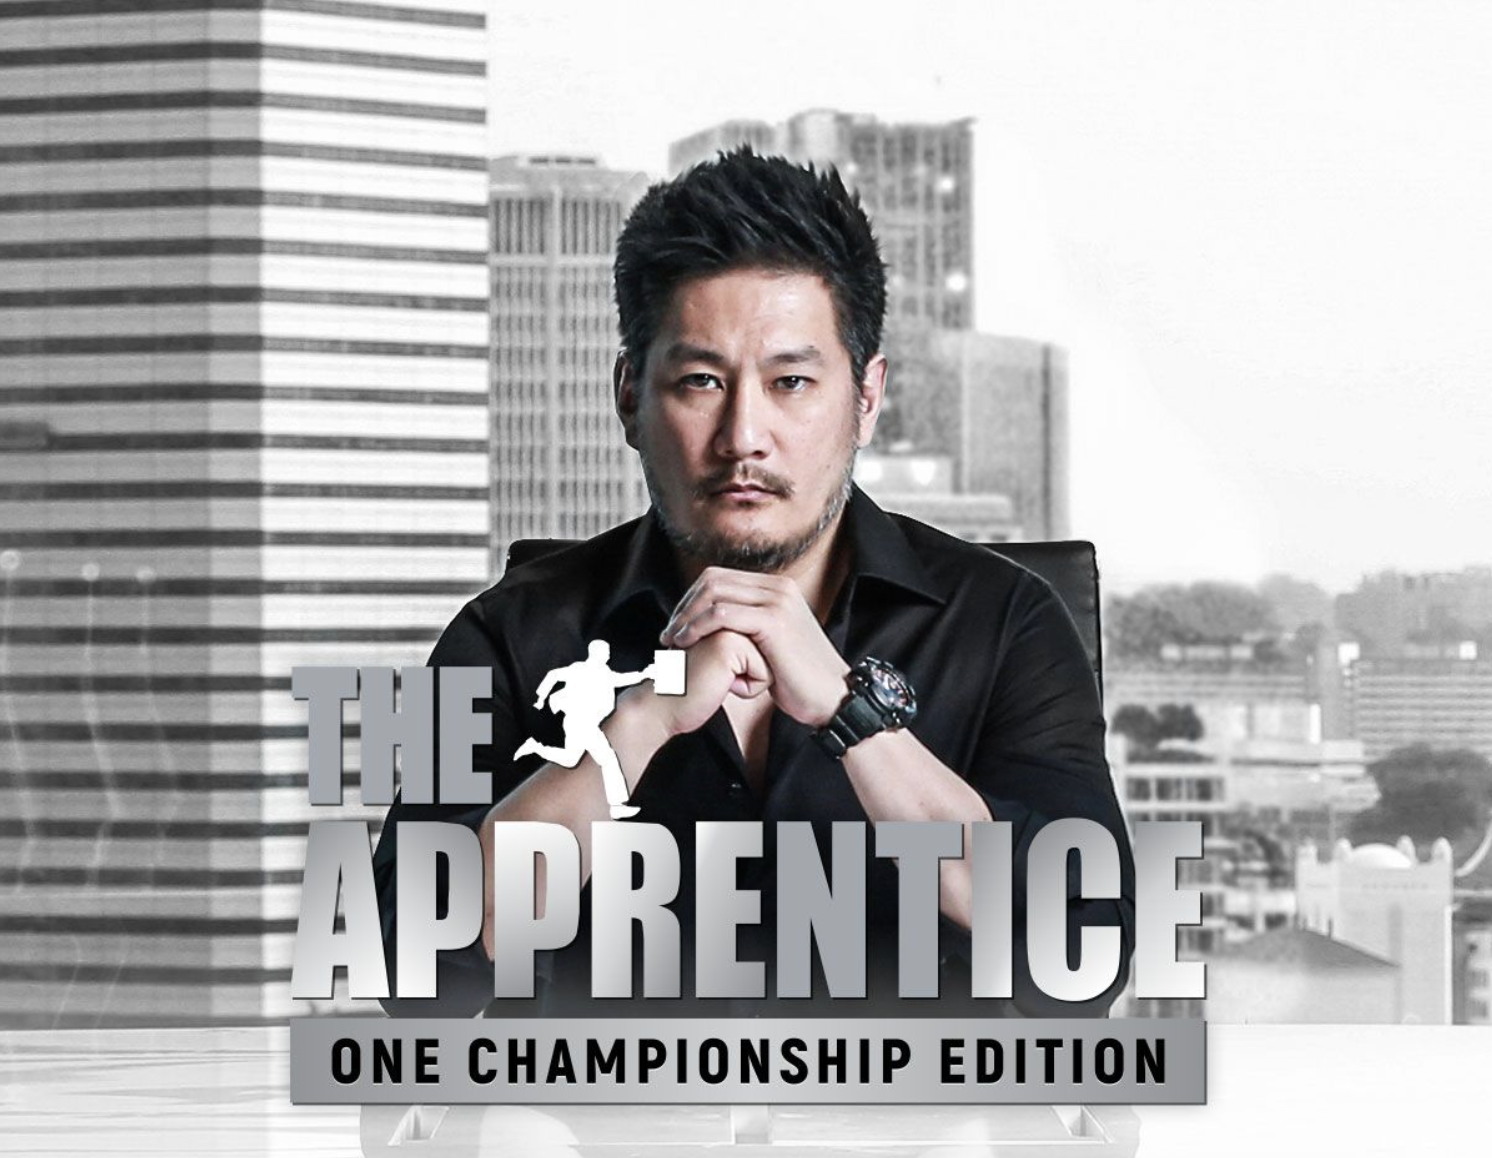 Chatri Sityodtong To Host The Apprentice: ONE Championship Edition